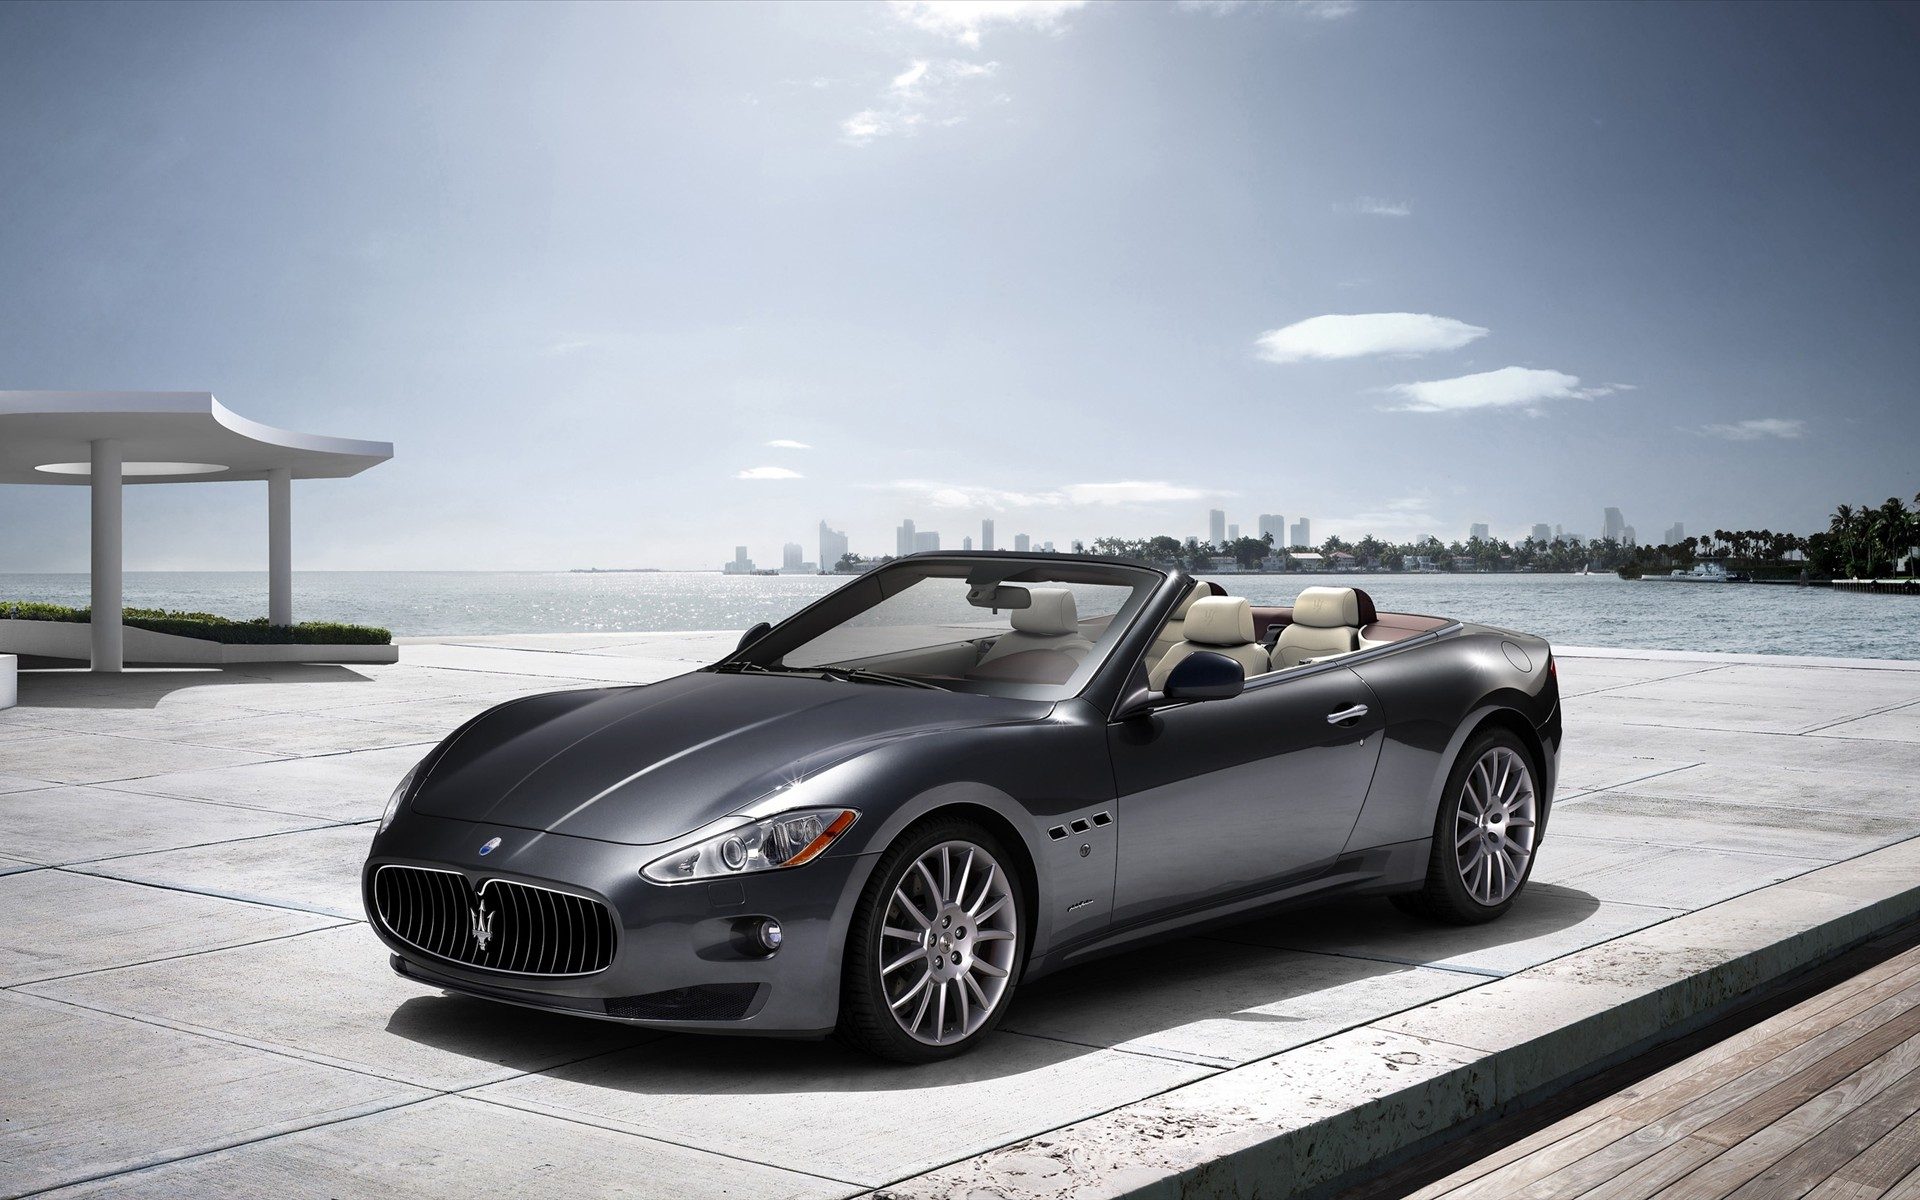 maserati quattroporte hd widescreen - photo #11